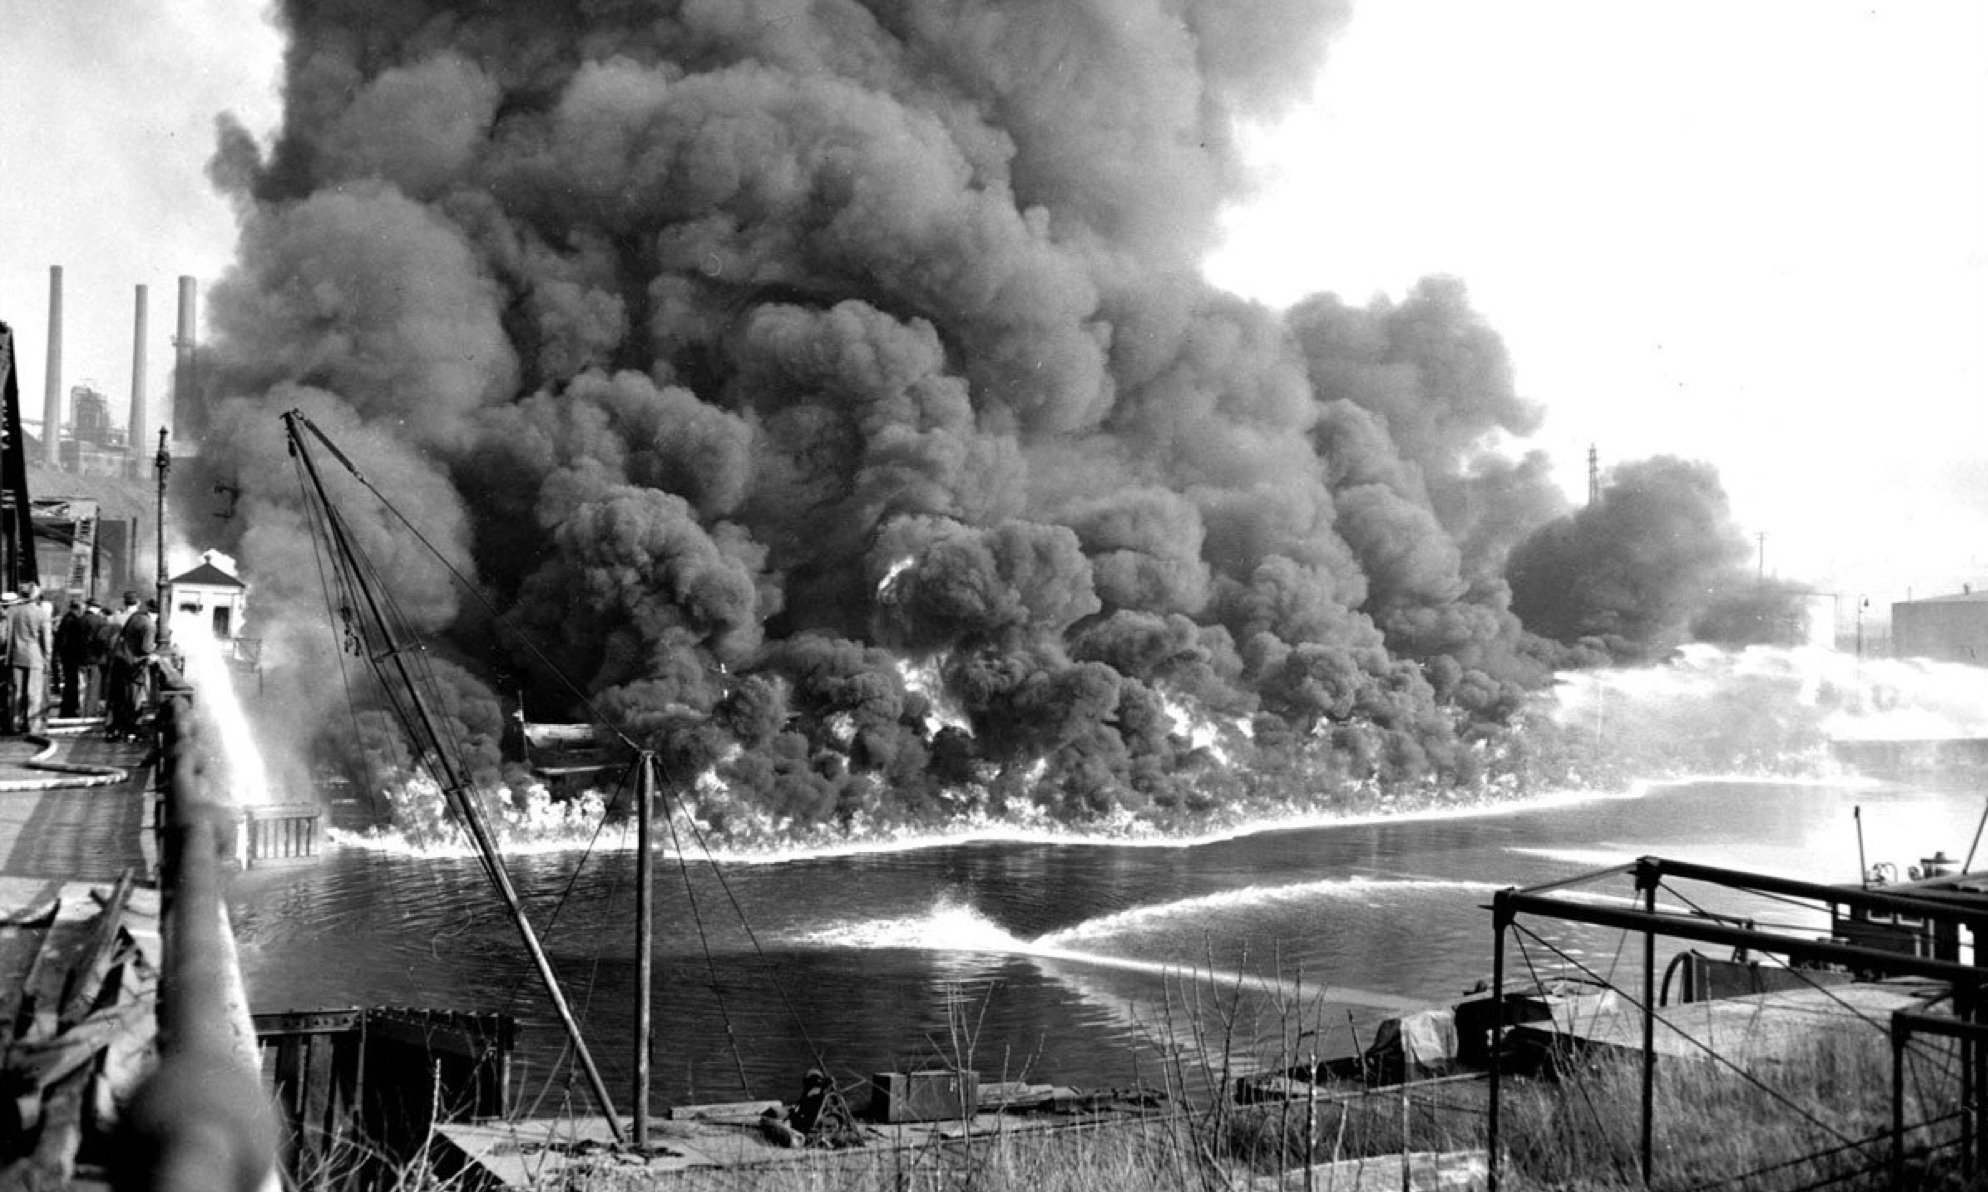 In 1969, the heavily polluted Cuyahoga River caught fire in Cleveland, Ohio. Image via the Cleveland State University Library.